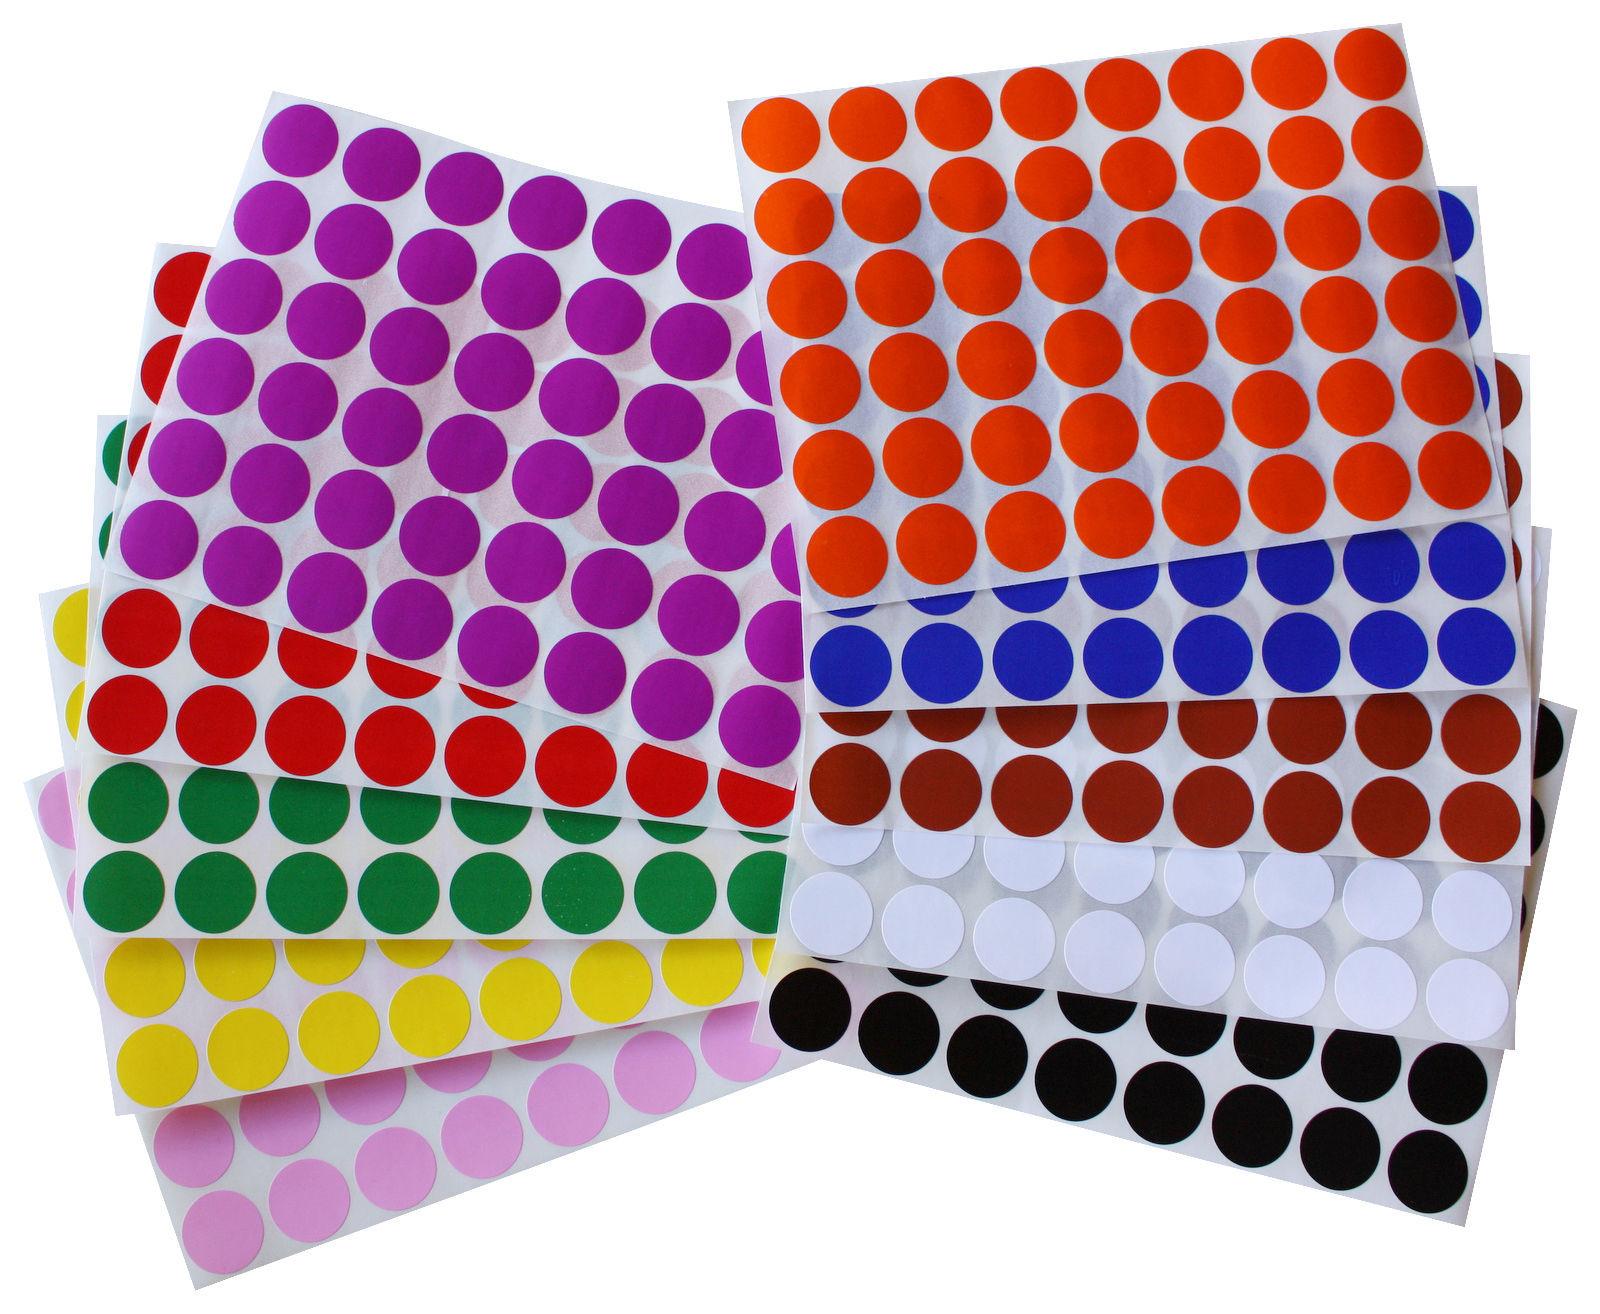 17mm 3 4 Inch Diameter Color Round Dot Stickers Small Sheets Labels 720 Pack Stickers